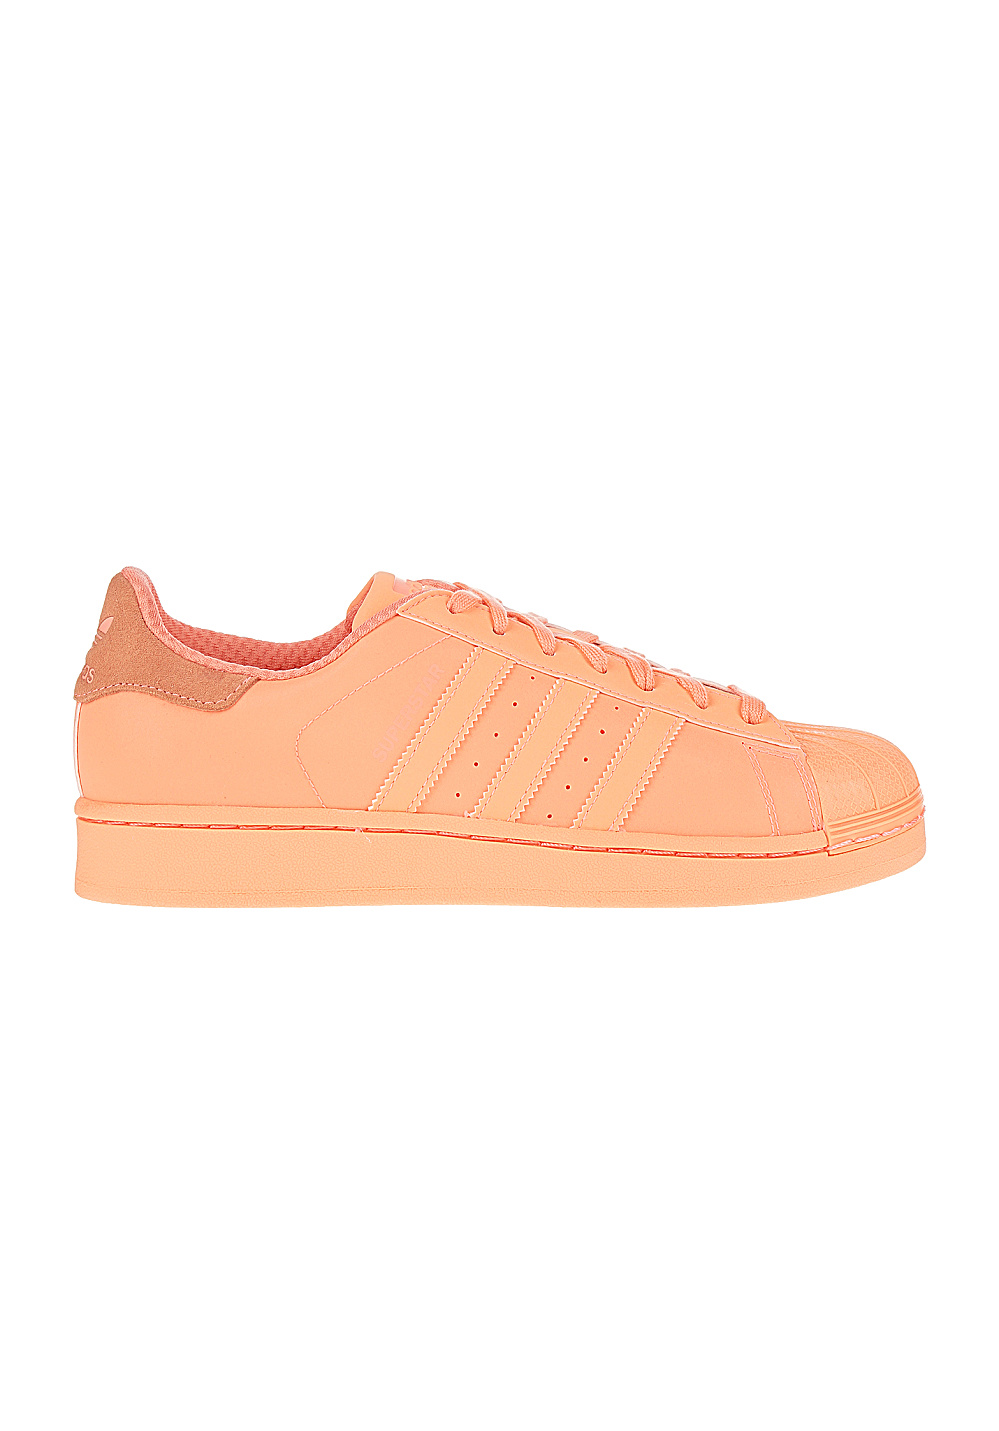 ADIDAS ORIGINALS Superstar Adicolor - Zapatillas para Mujeres ... 7e69a0092659a